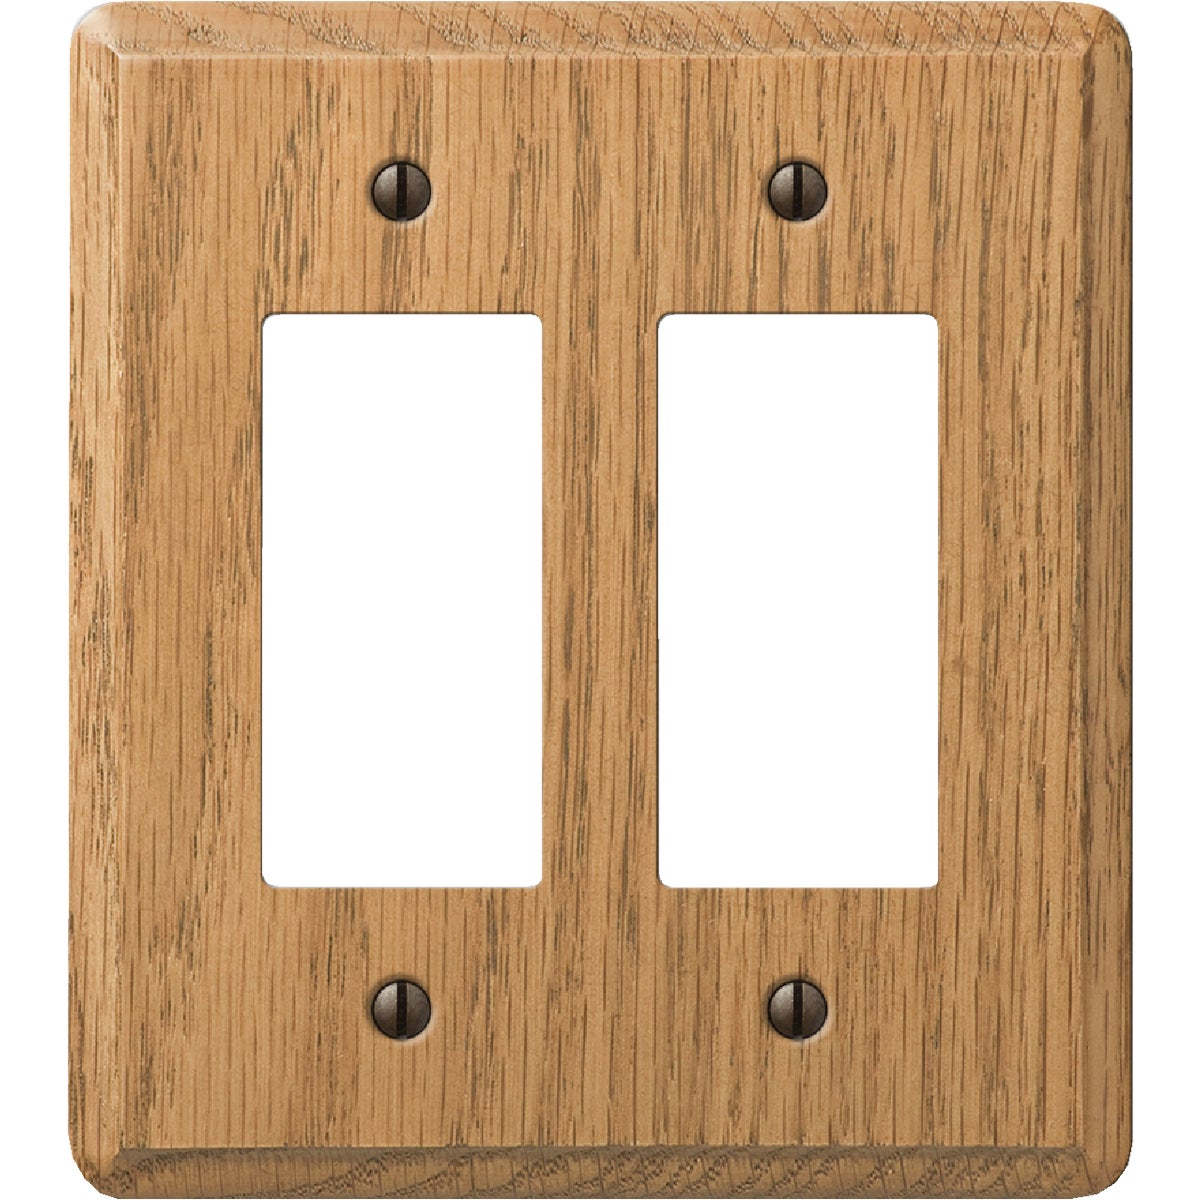 OAK 2-GFI WALL PLATE - 927L by Jackson Deerfield Mf